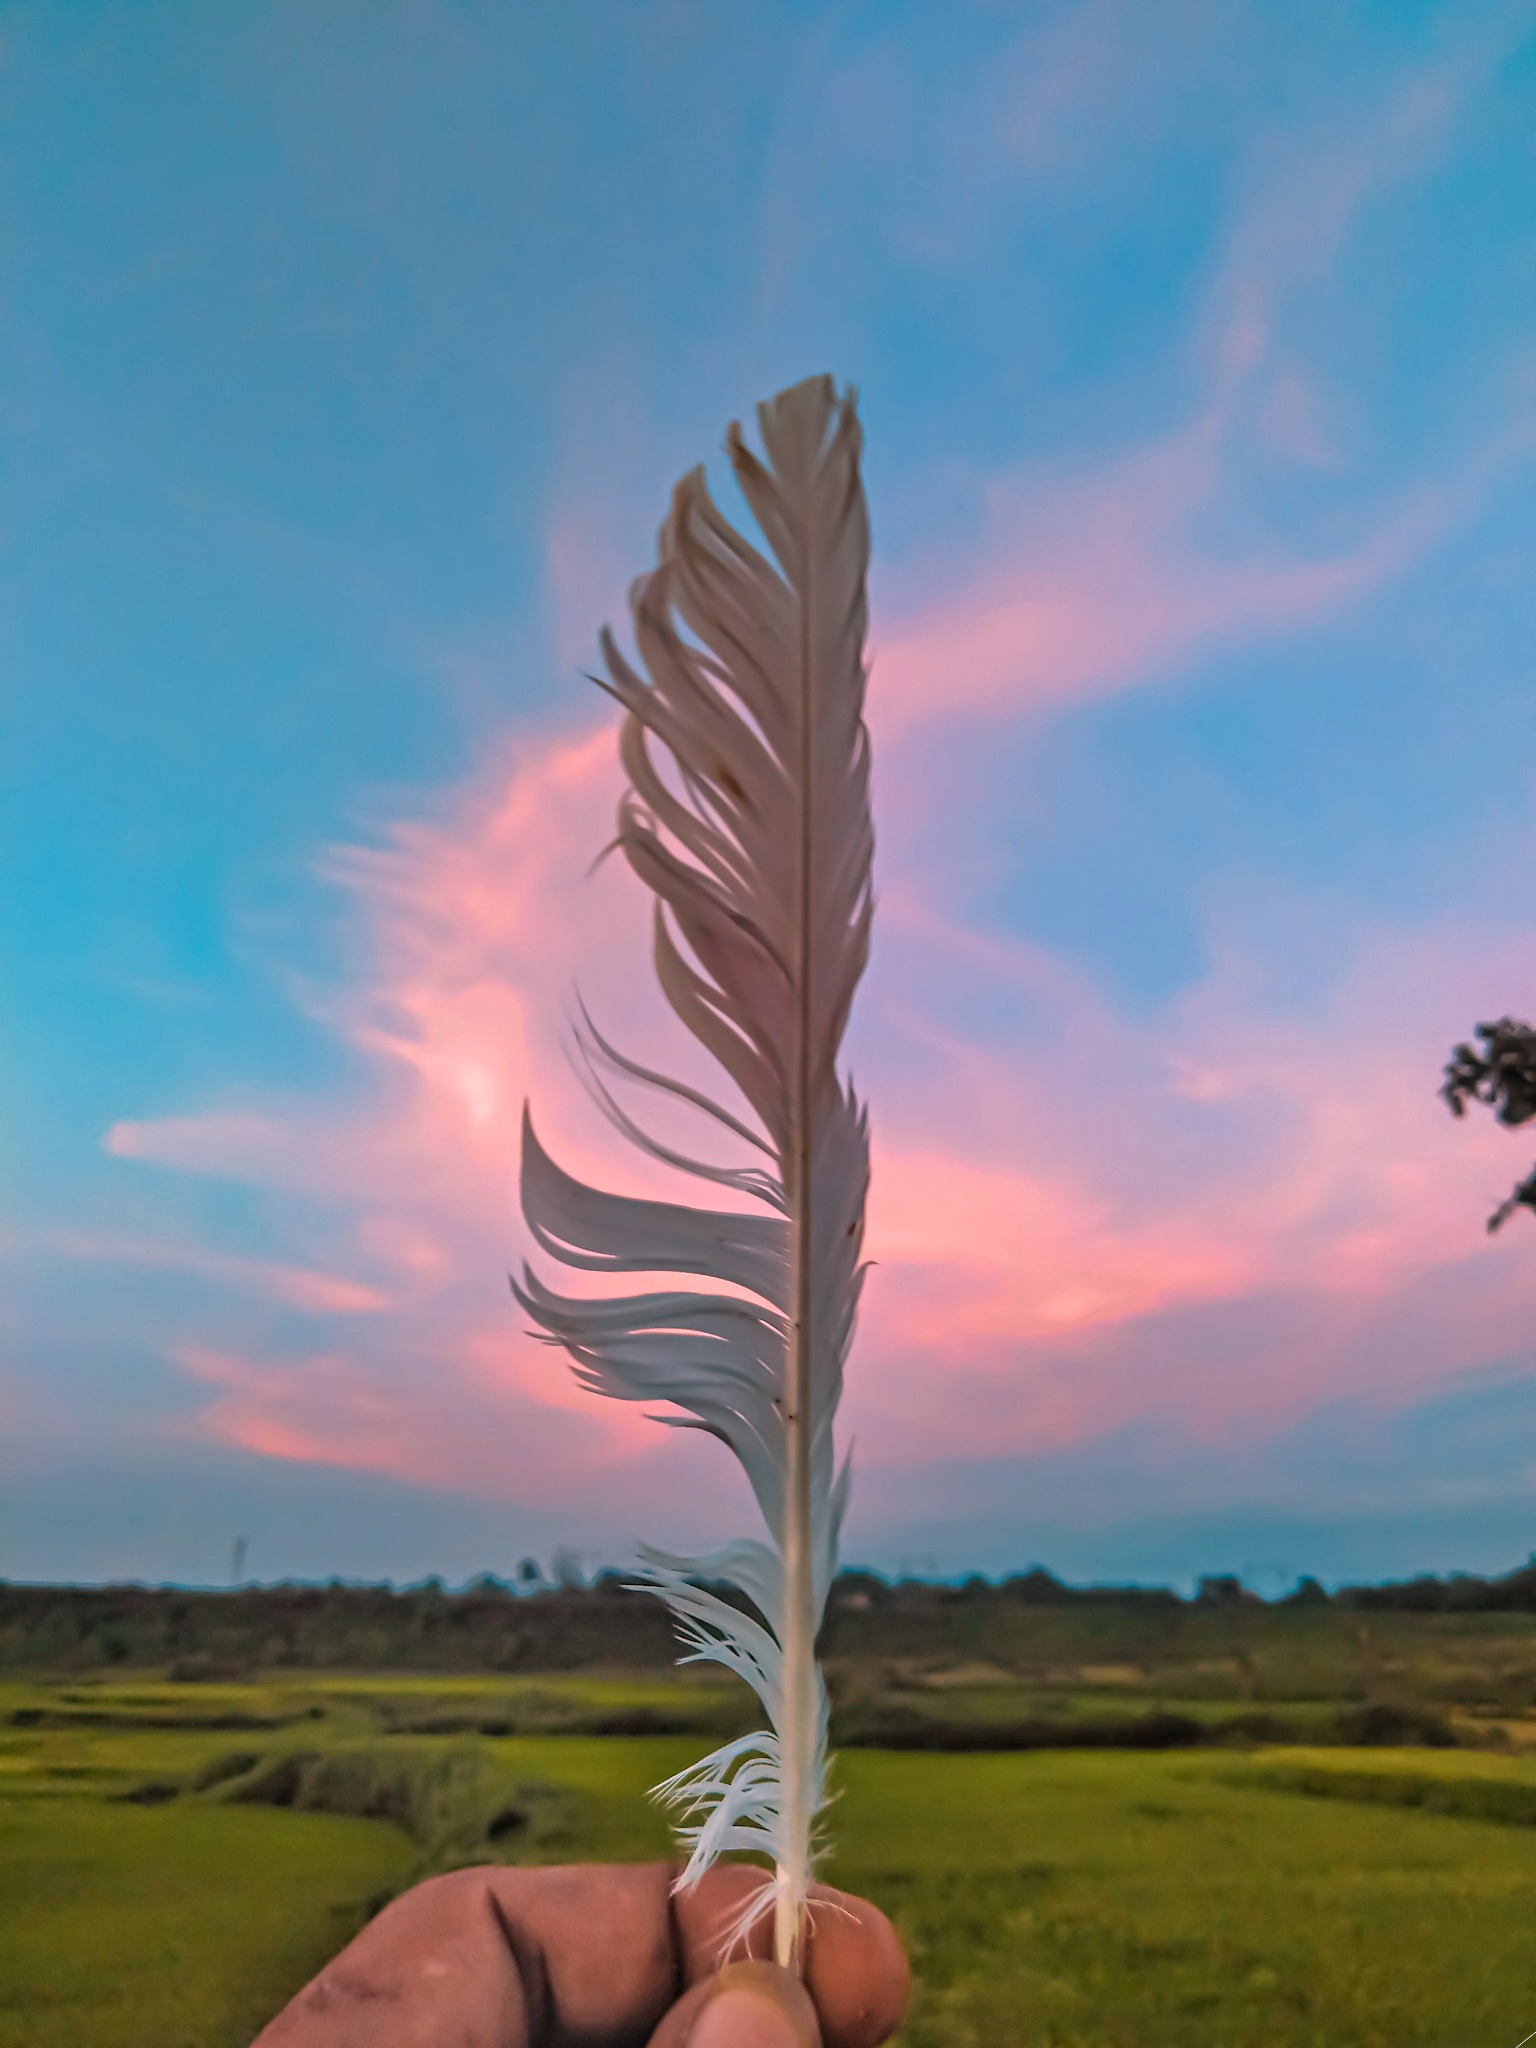 A feather in the hand.